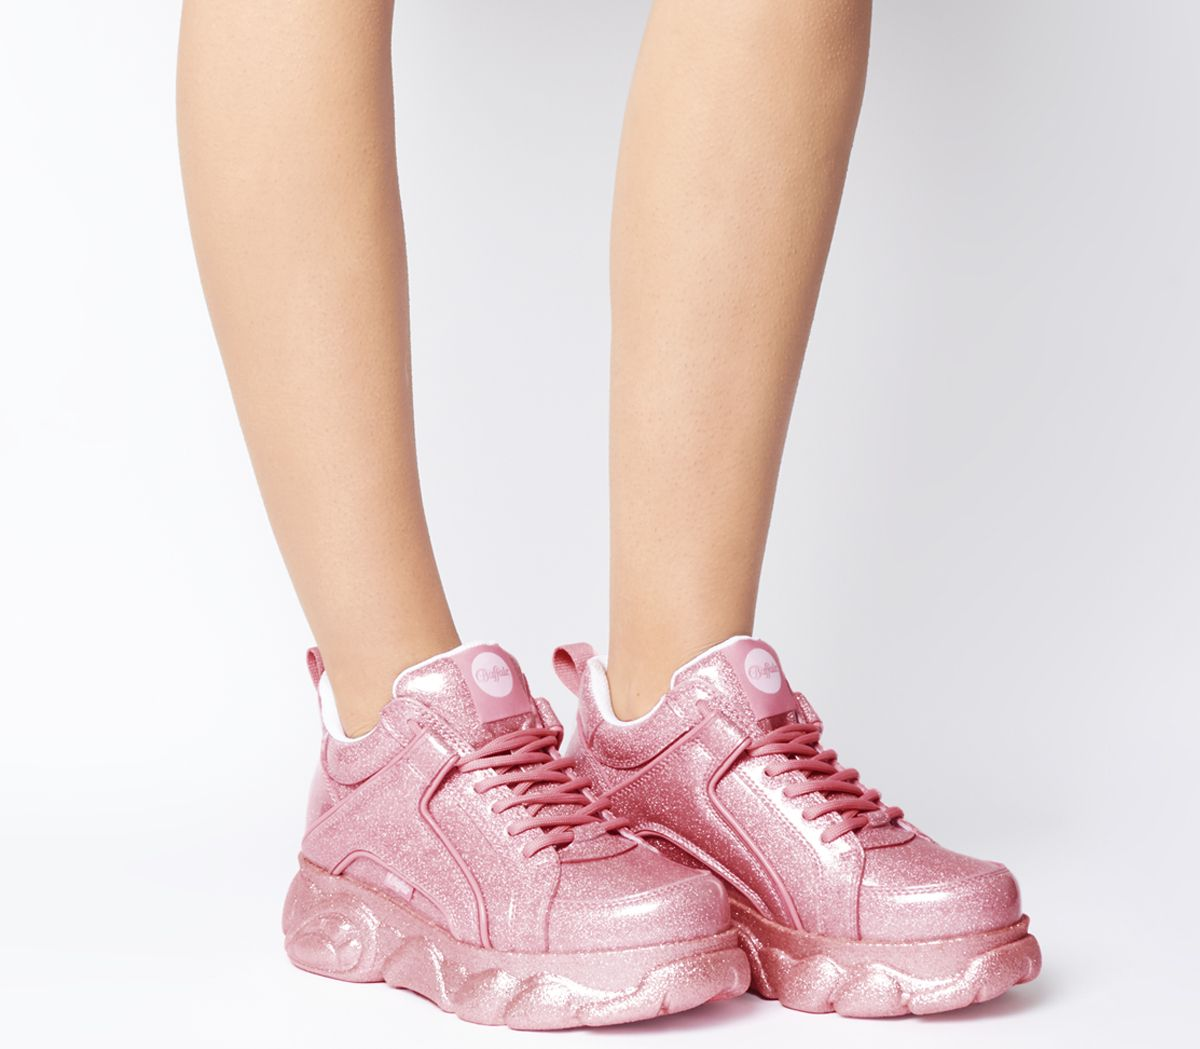 aa86c3b2679b2 Details about Womens Buffalo Corin Sneakers Pink Trainers Shoes